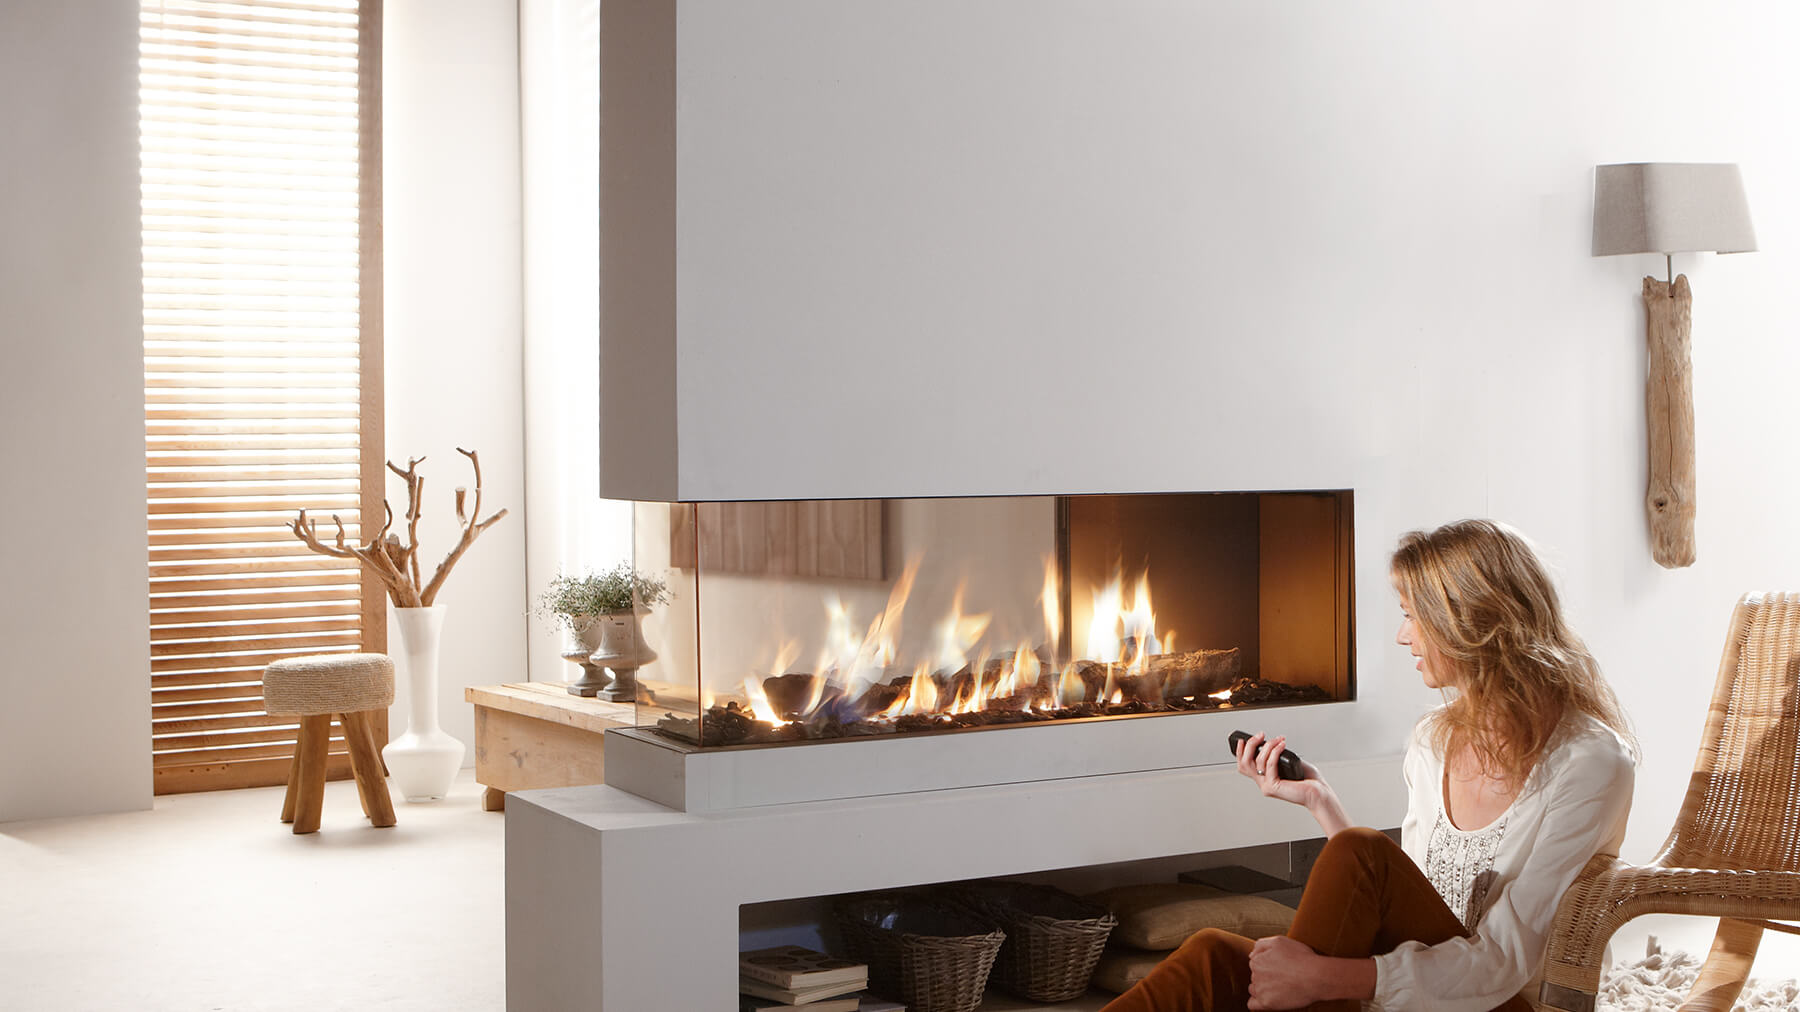 Chicago Fireplace Company's gas fireplace technicians have over 50 years combined experience working on direct vent